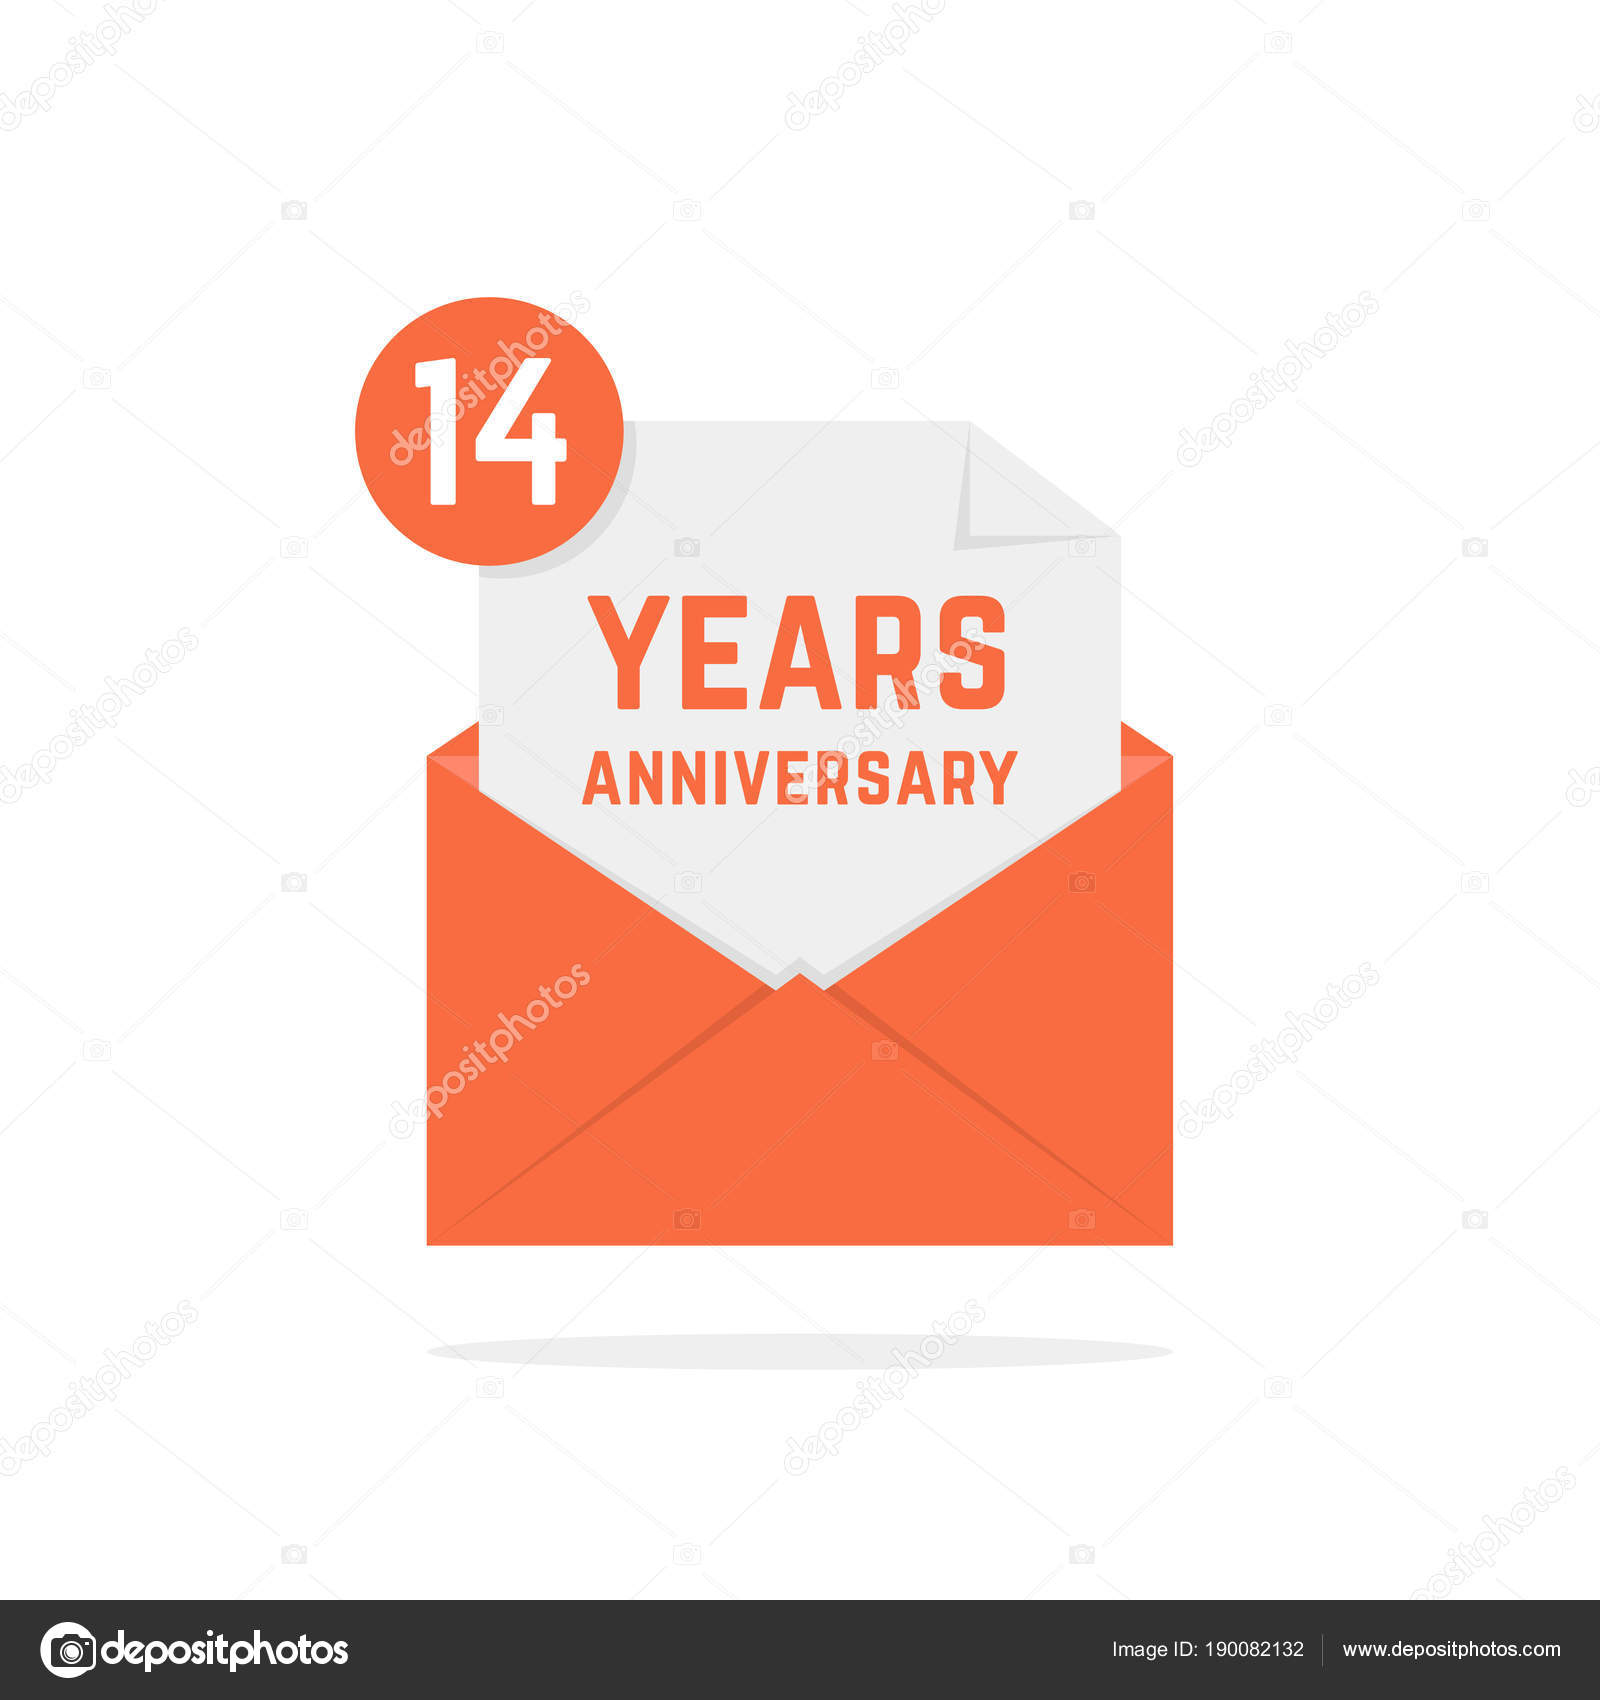 14 years anniversary icon in orange open letter — Stock Vector ...